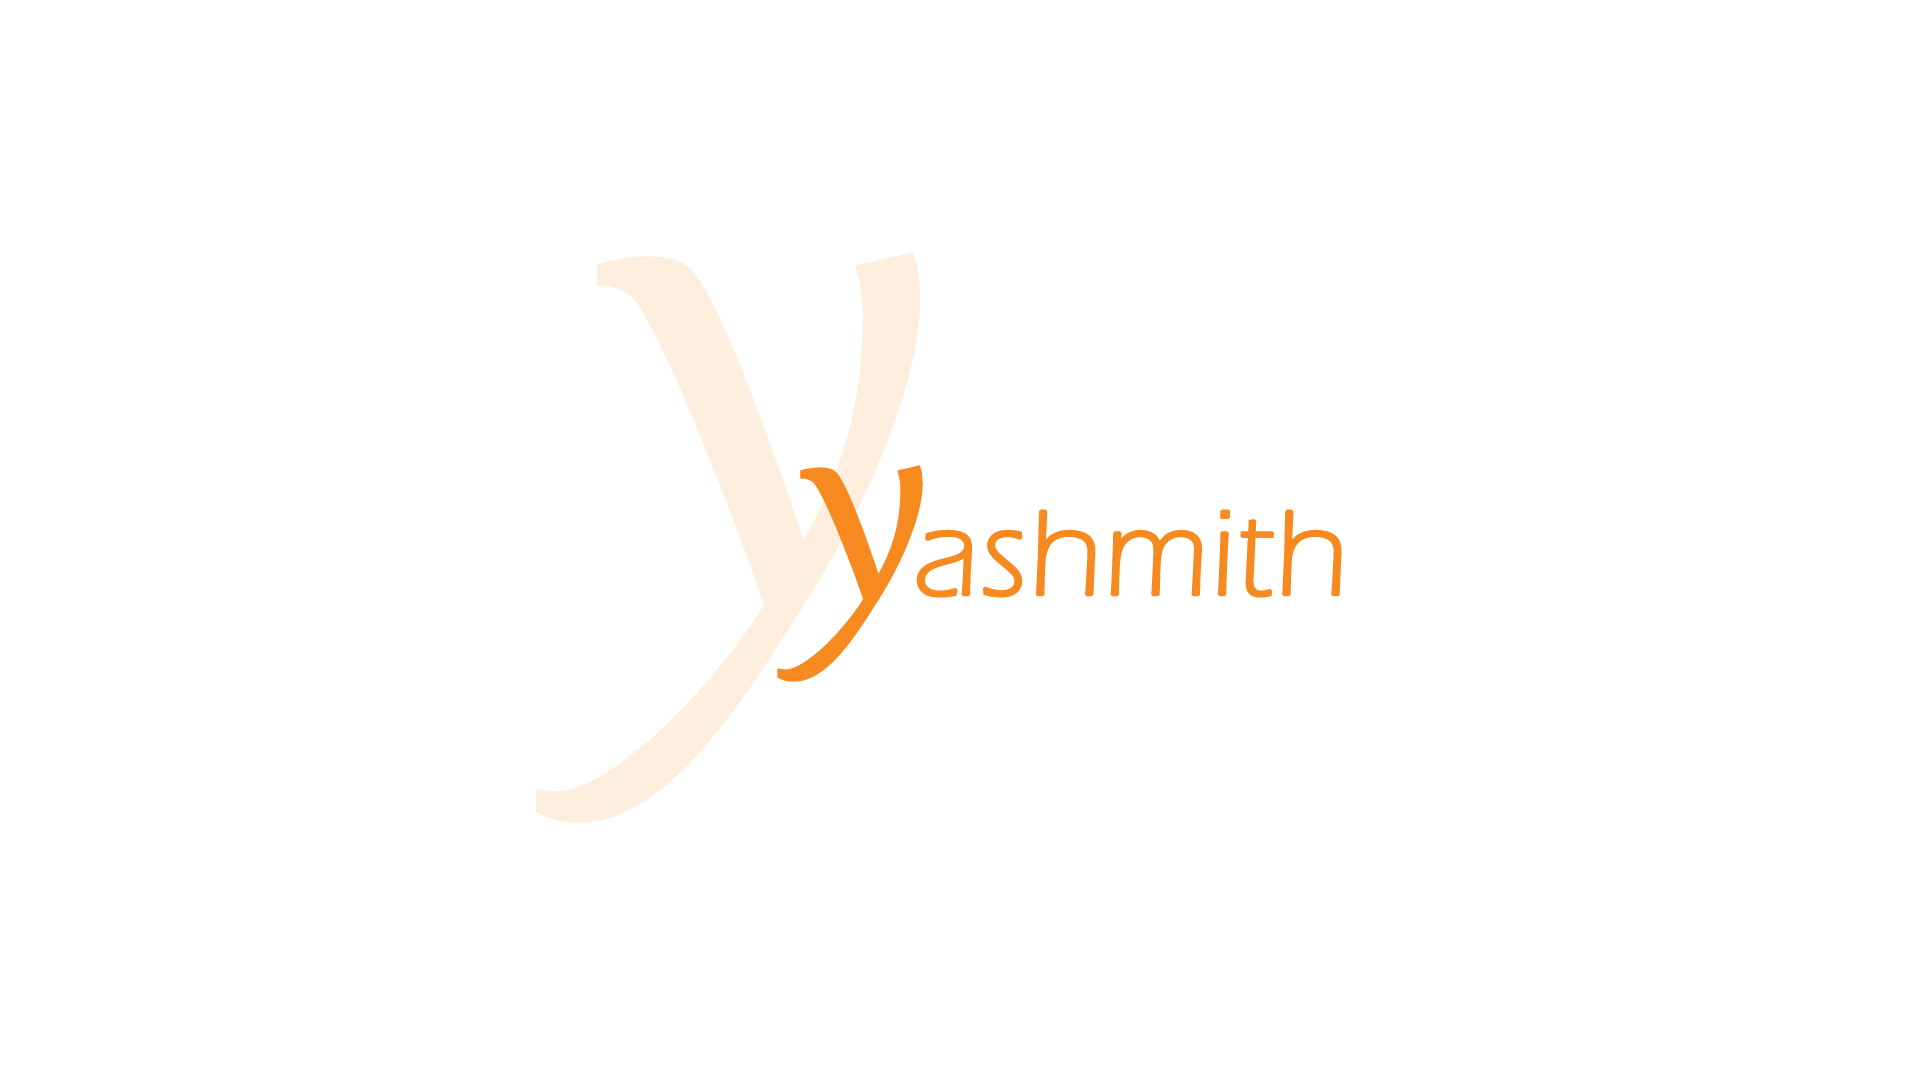 Yashmith | Yashmith Official, Actor Yashmith, யஷ்மித் |